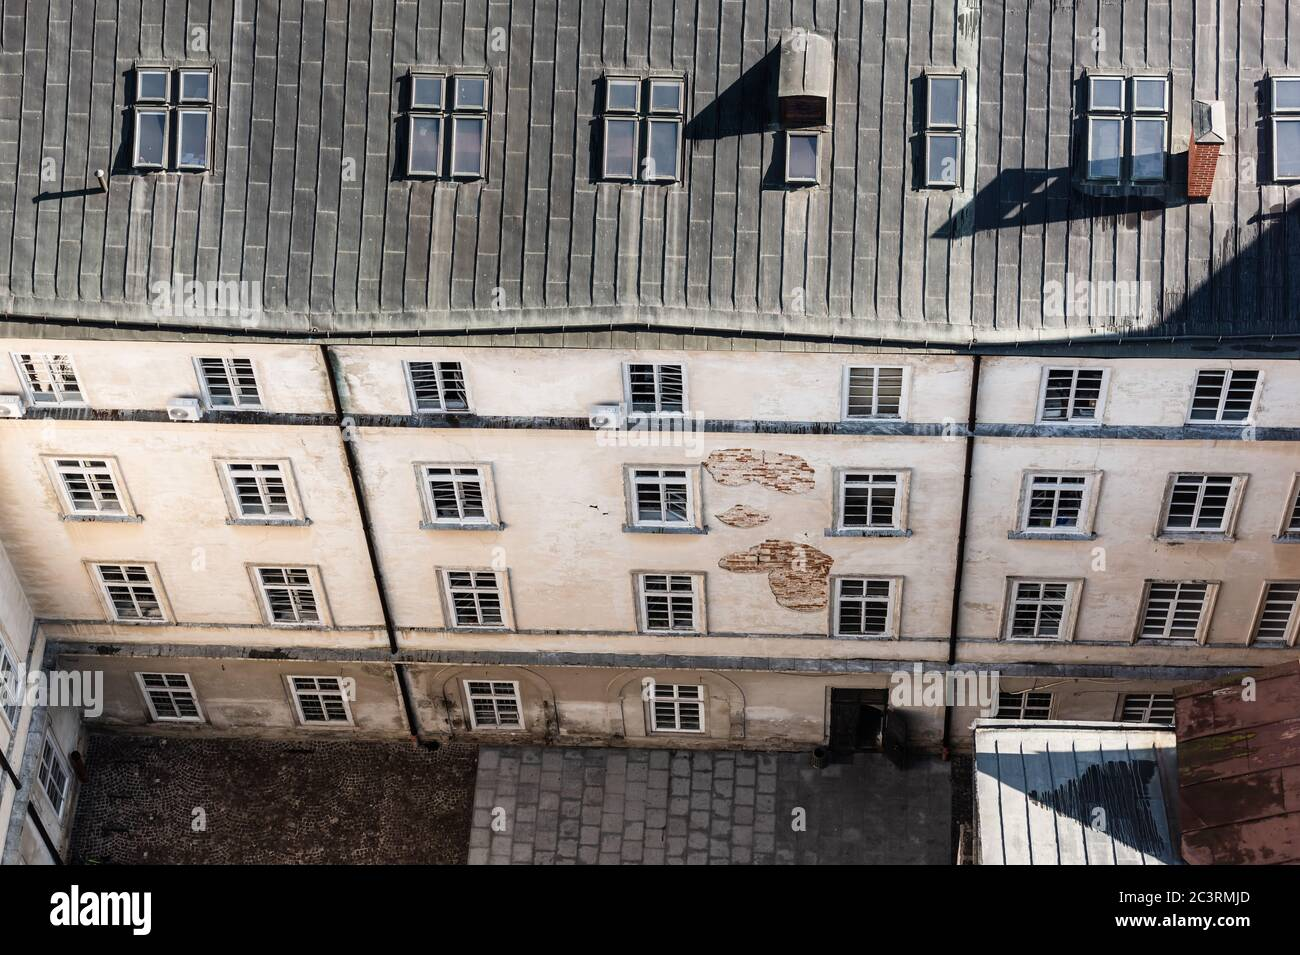 Aerial View Of Old House With Mansard Windows In Lviv Ukraine Stock Photo Alamy